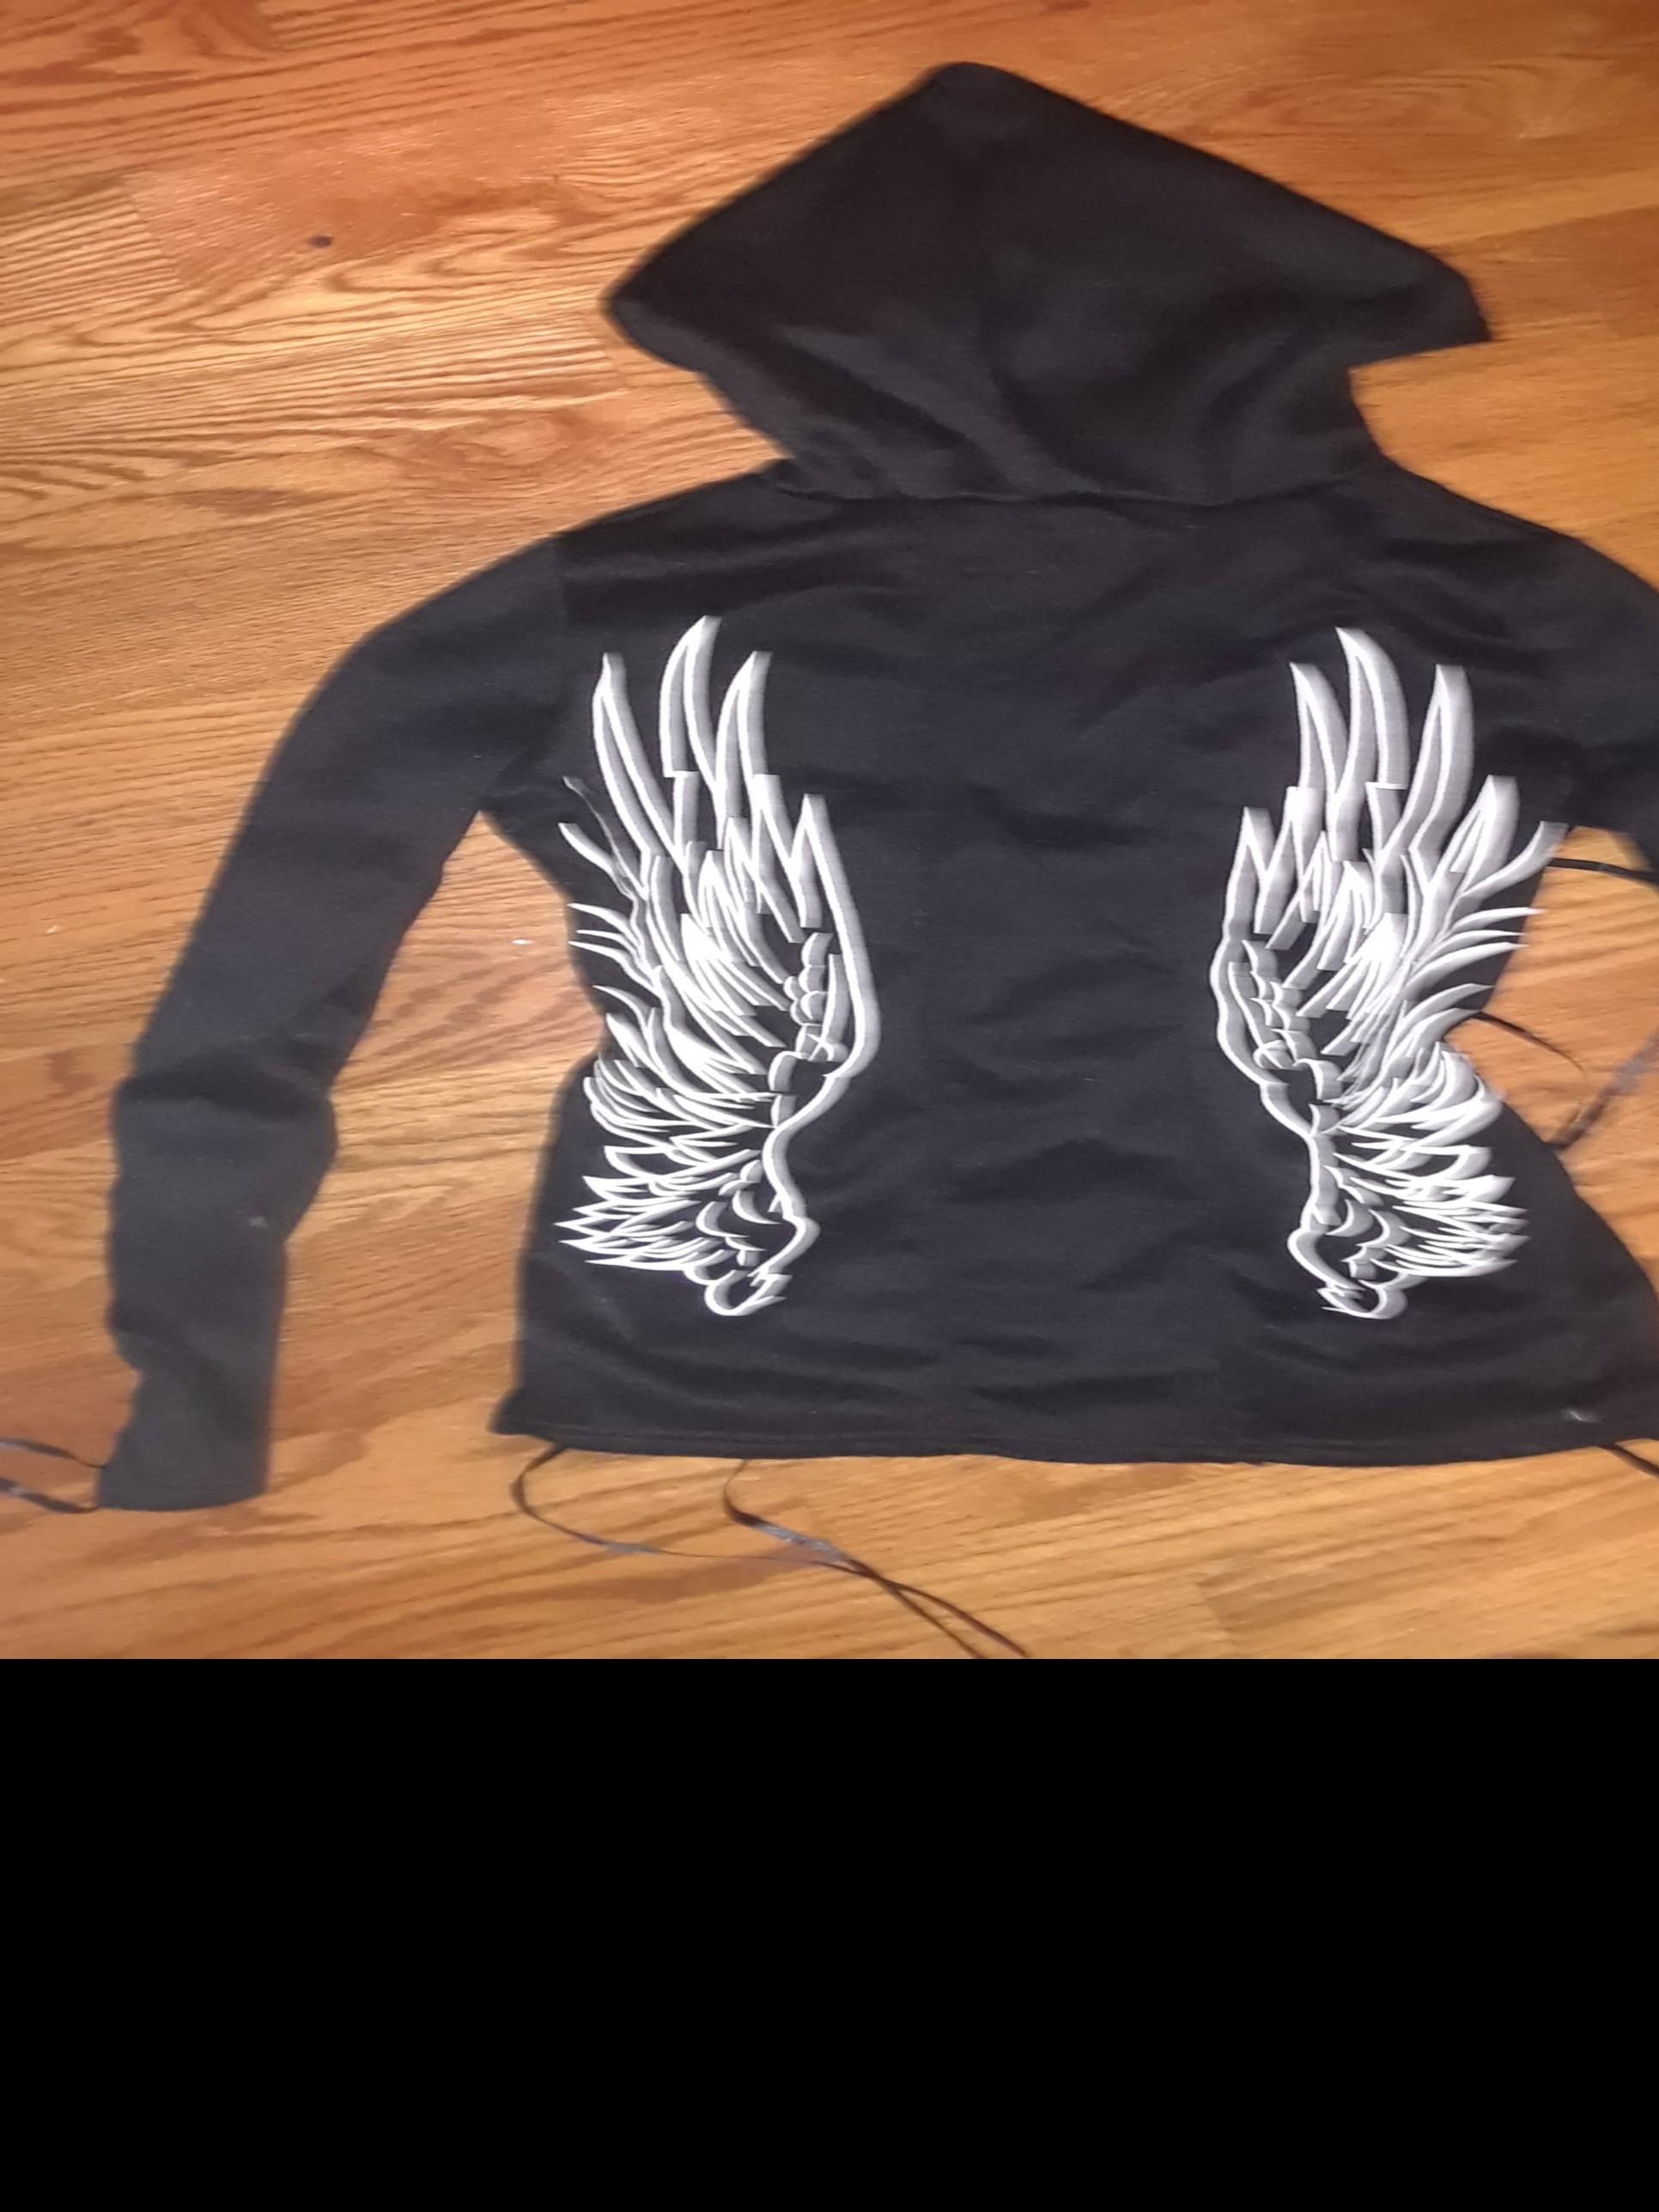 Black fleece hoodie gothic corset ribbon detail sleeves back angel wings printed Medium